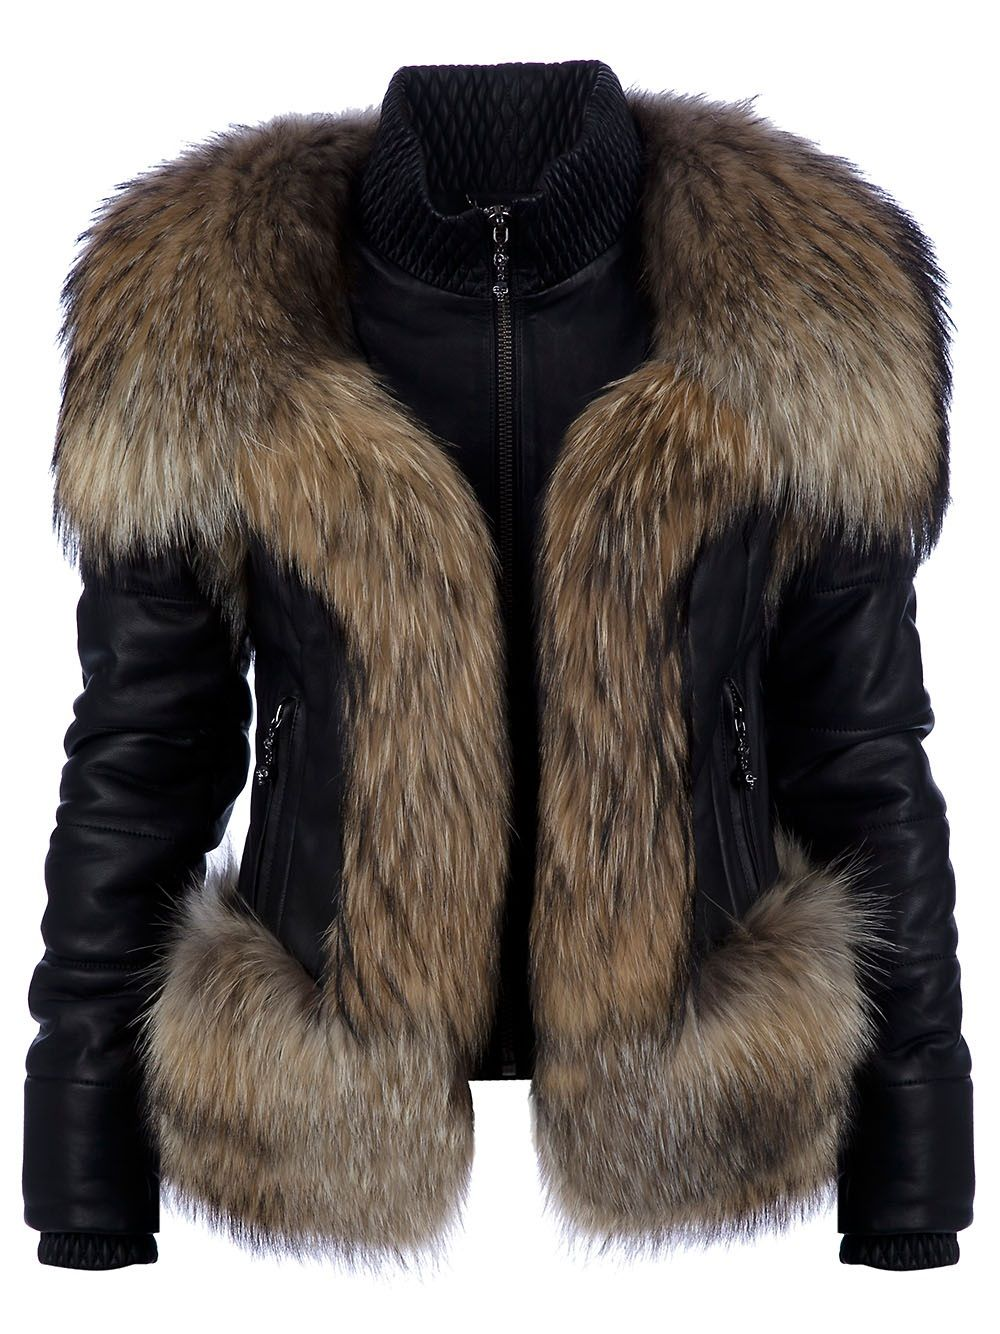 Philipp Plein leather fur jacket Fur leather jacket